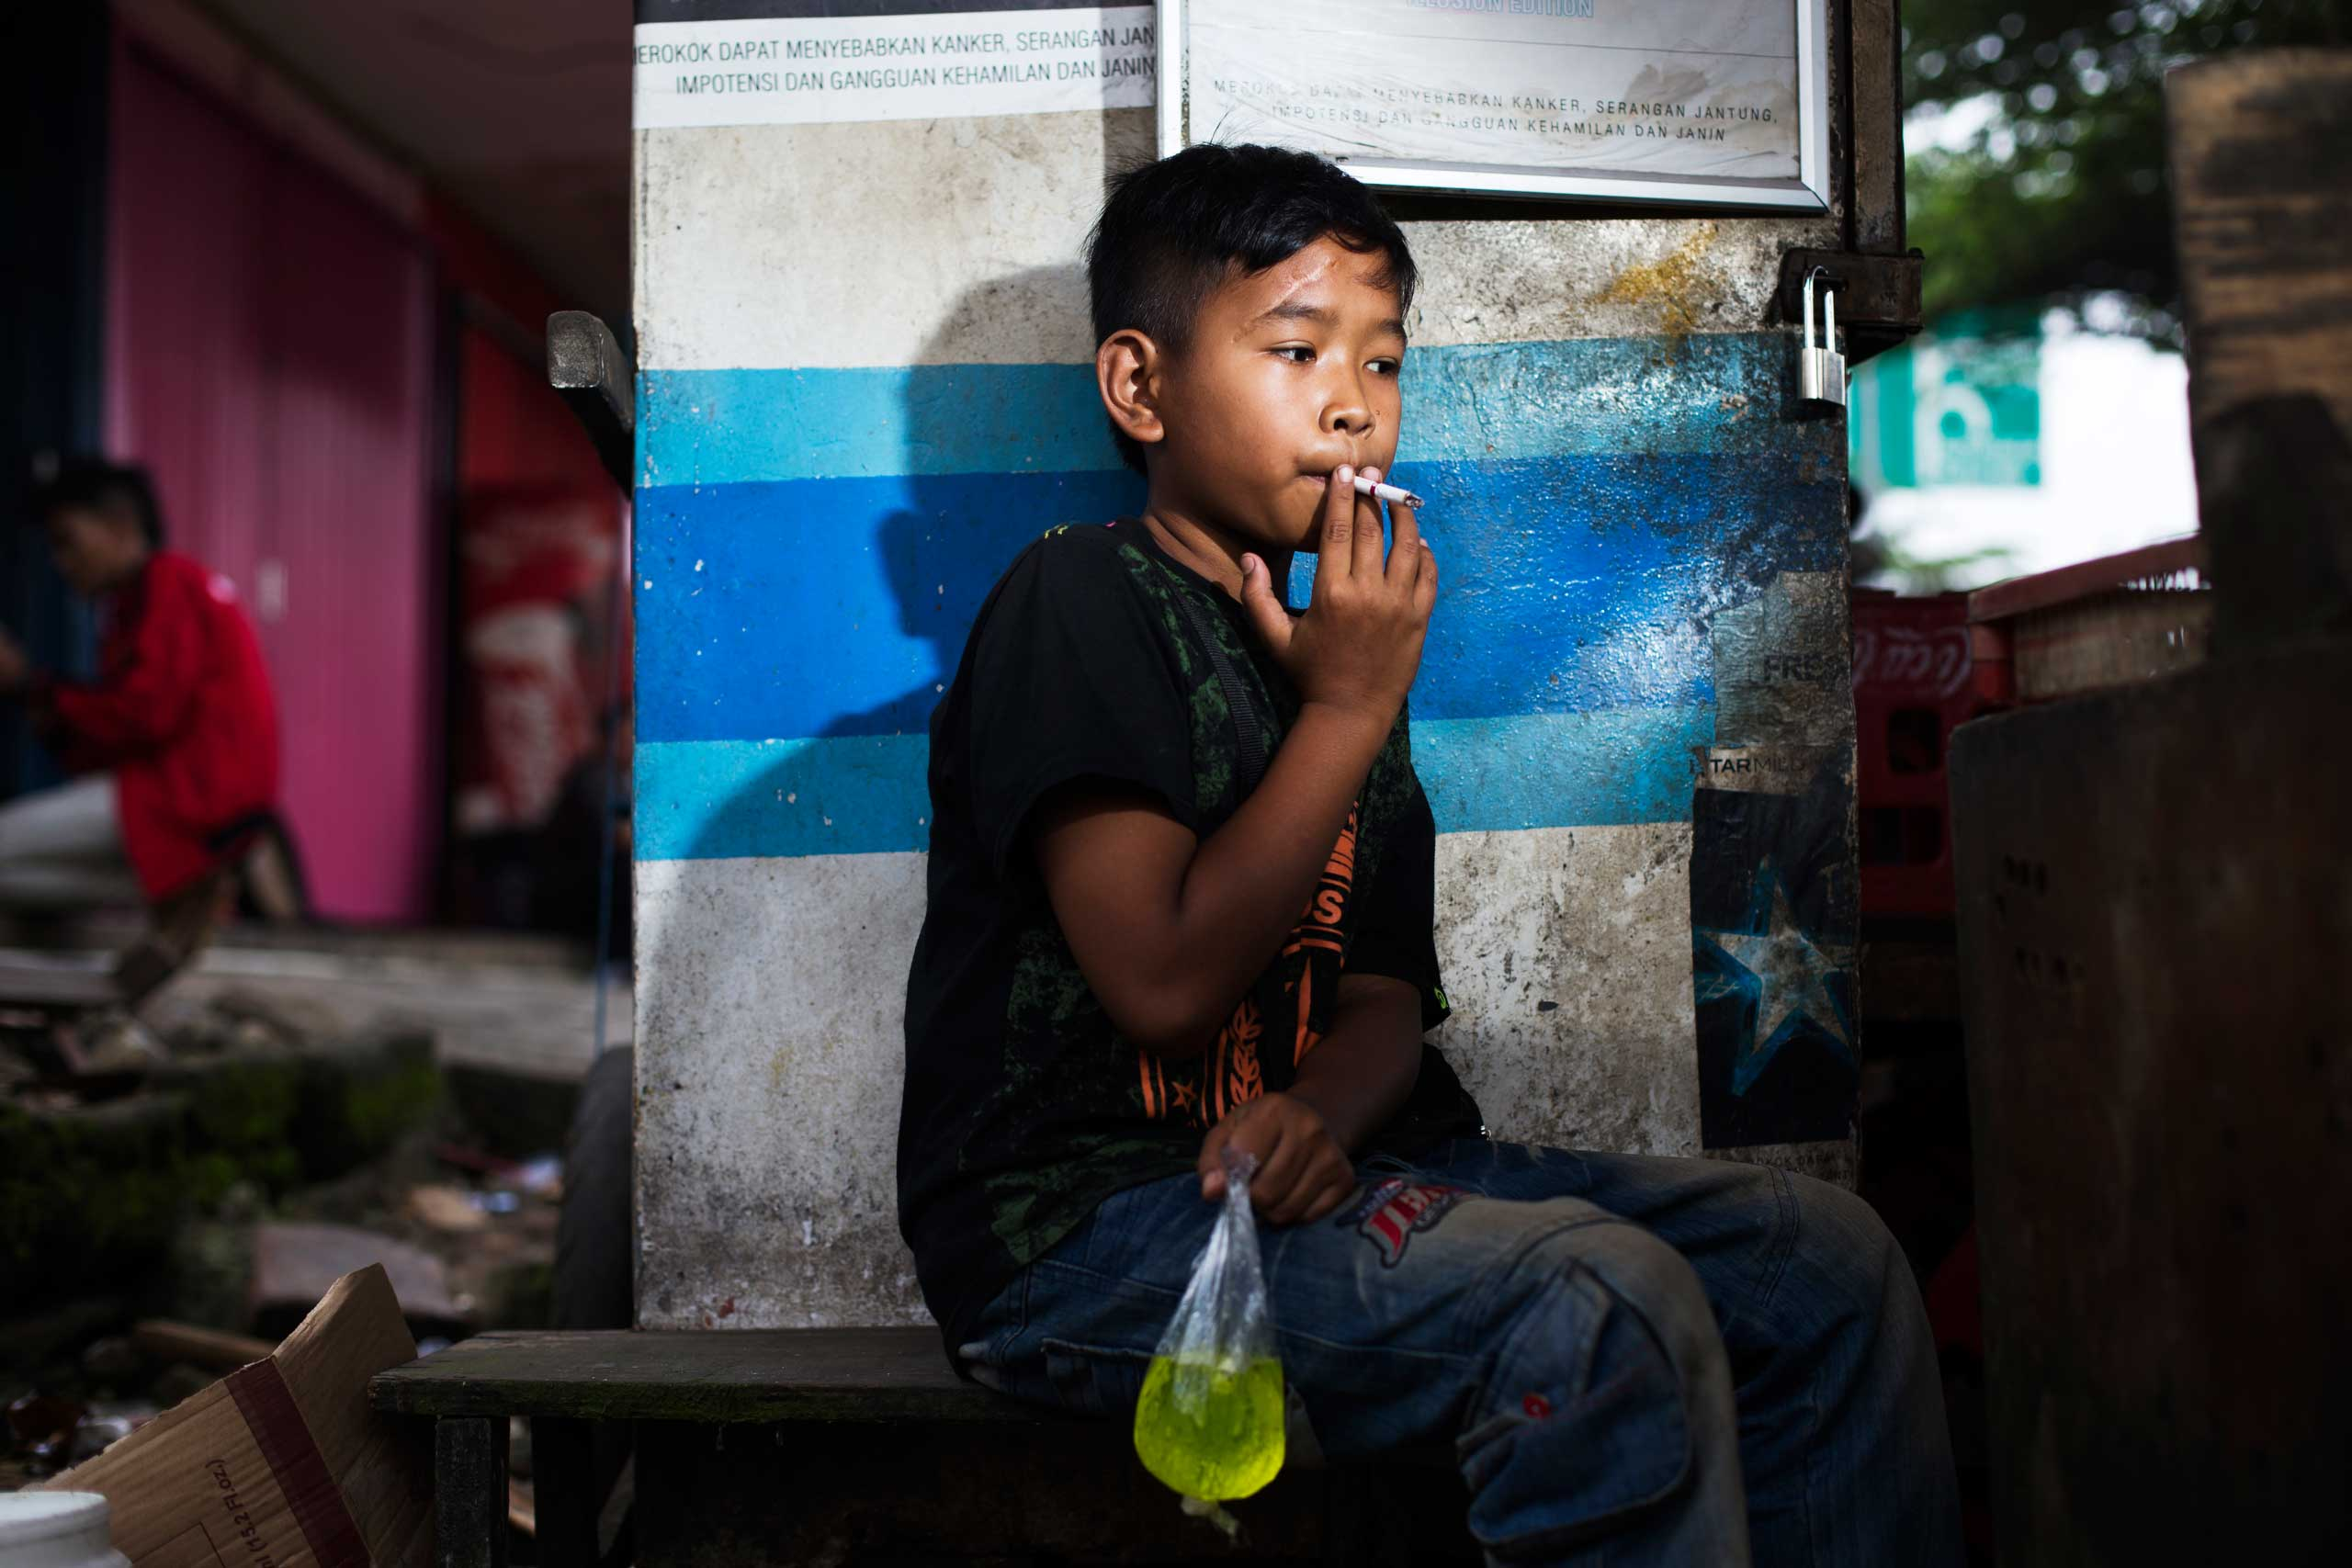 Eman poses for a photo as he smokes a cigarette while clutching a bag of juice in east Jakarta, Indonesia on February 12, 2014.